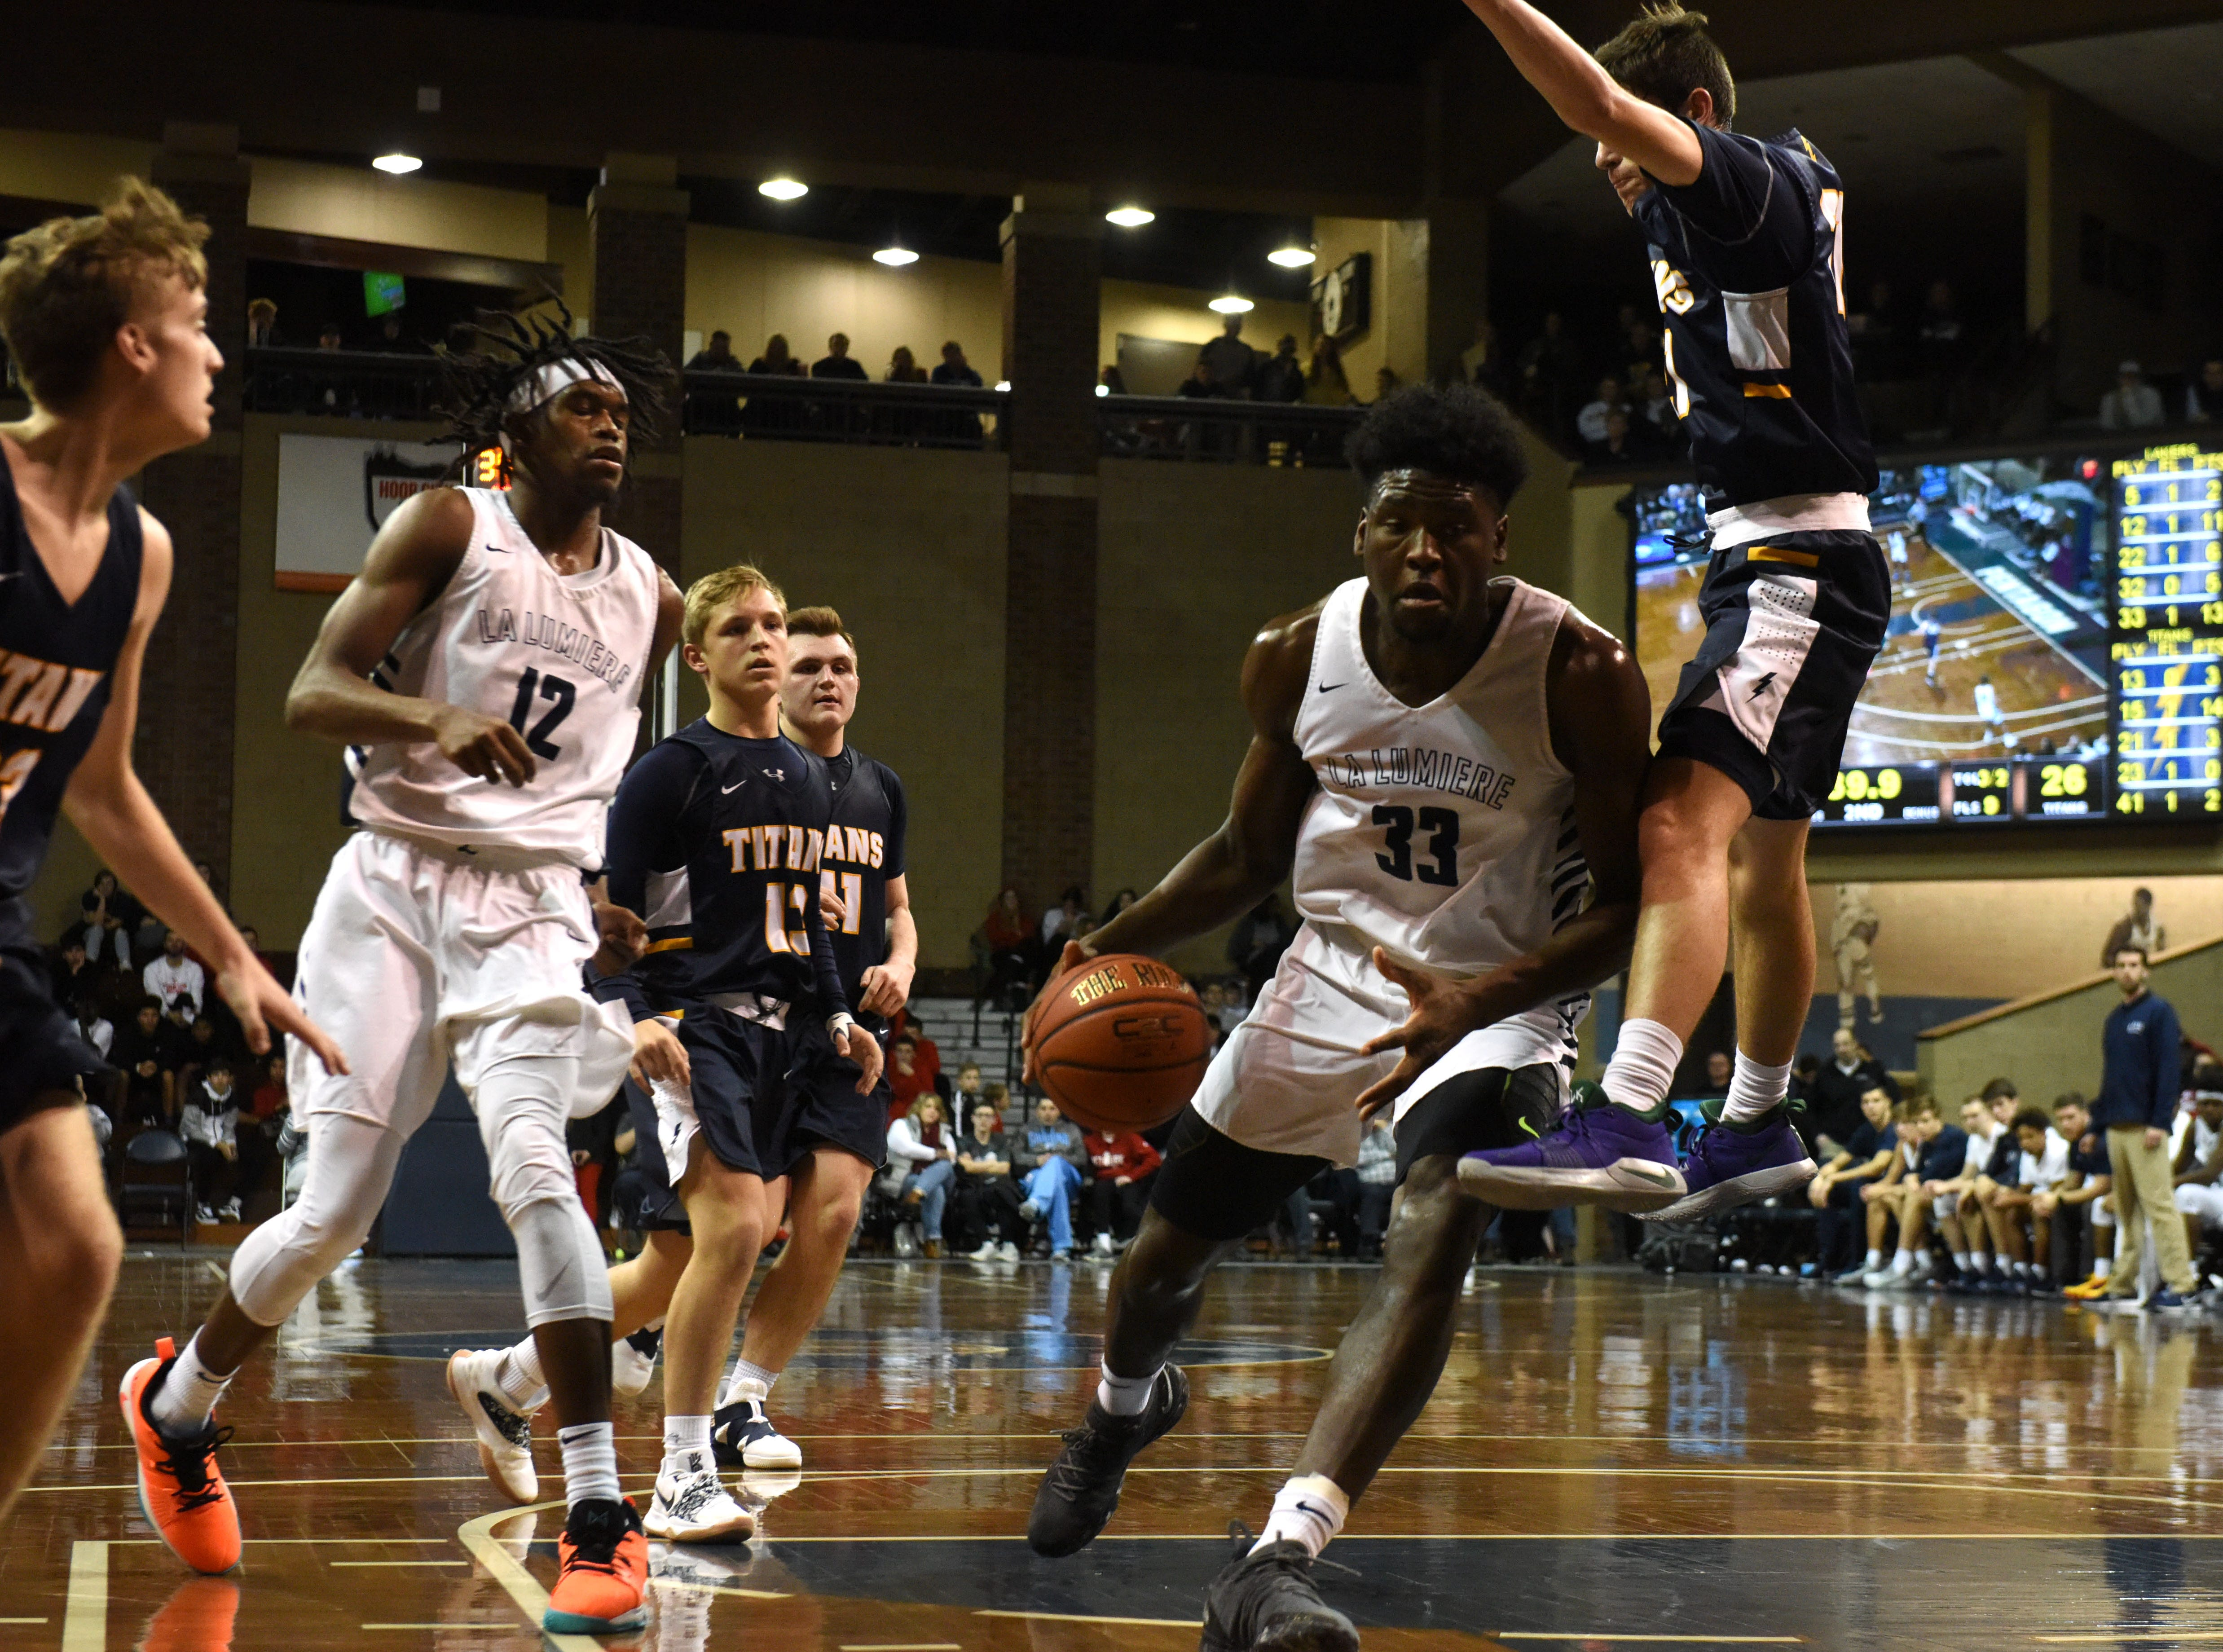 La Lumiere's Isaiah Stewart (33) dribbles the ball during a game against Tea at the Hoop City Classic at the Sanford Pentagon in Sioux Falls, S.D., Saturday, Dec. 29, 2018.